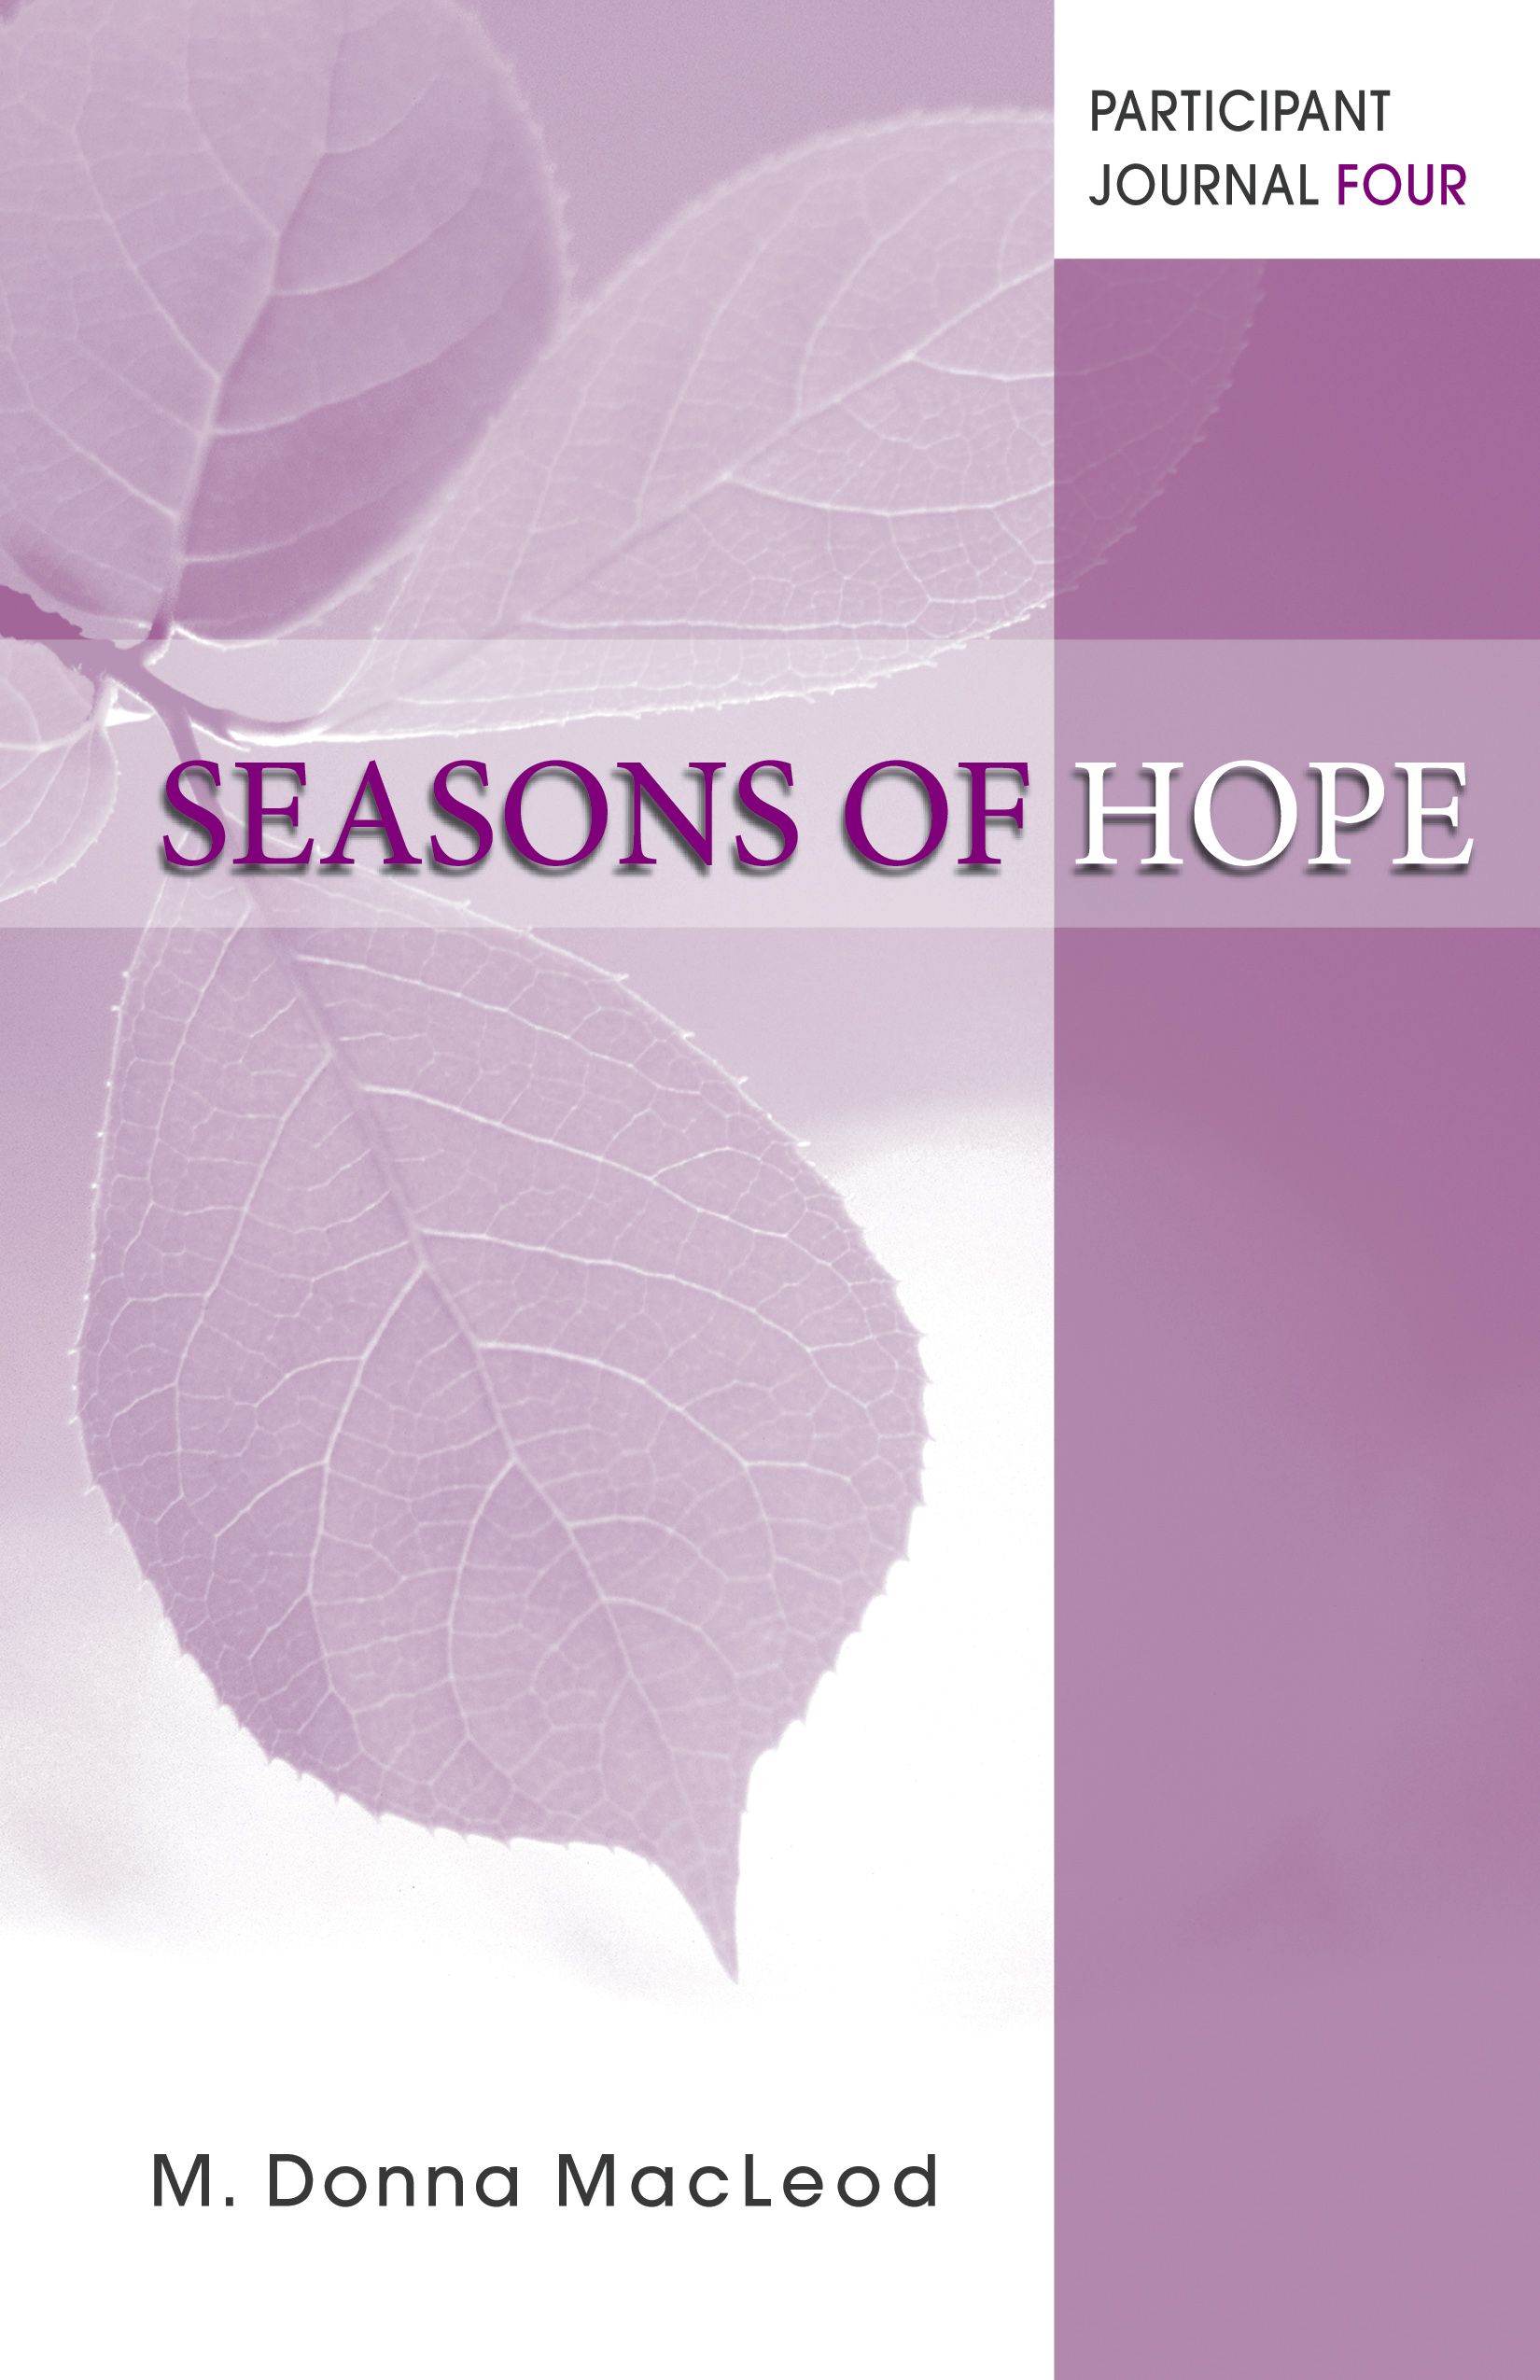 Seasons of Hope Participant Journal 4